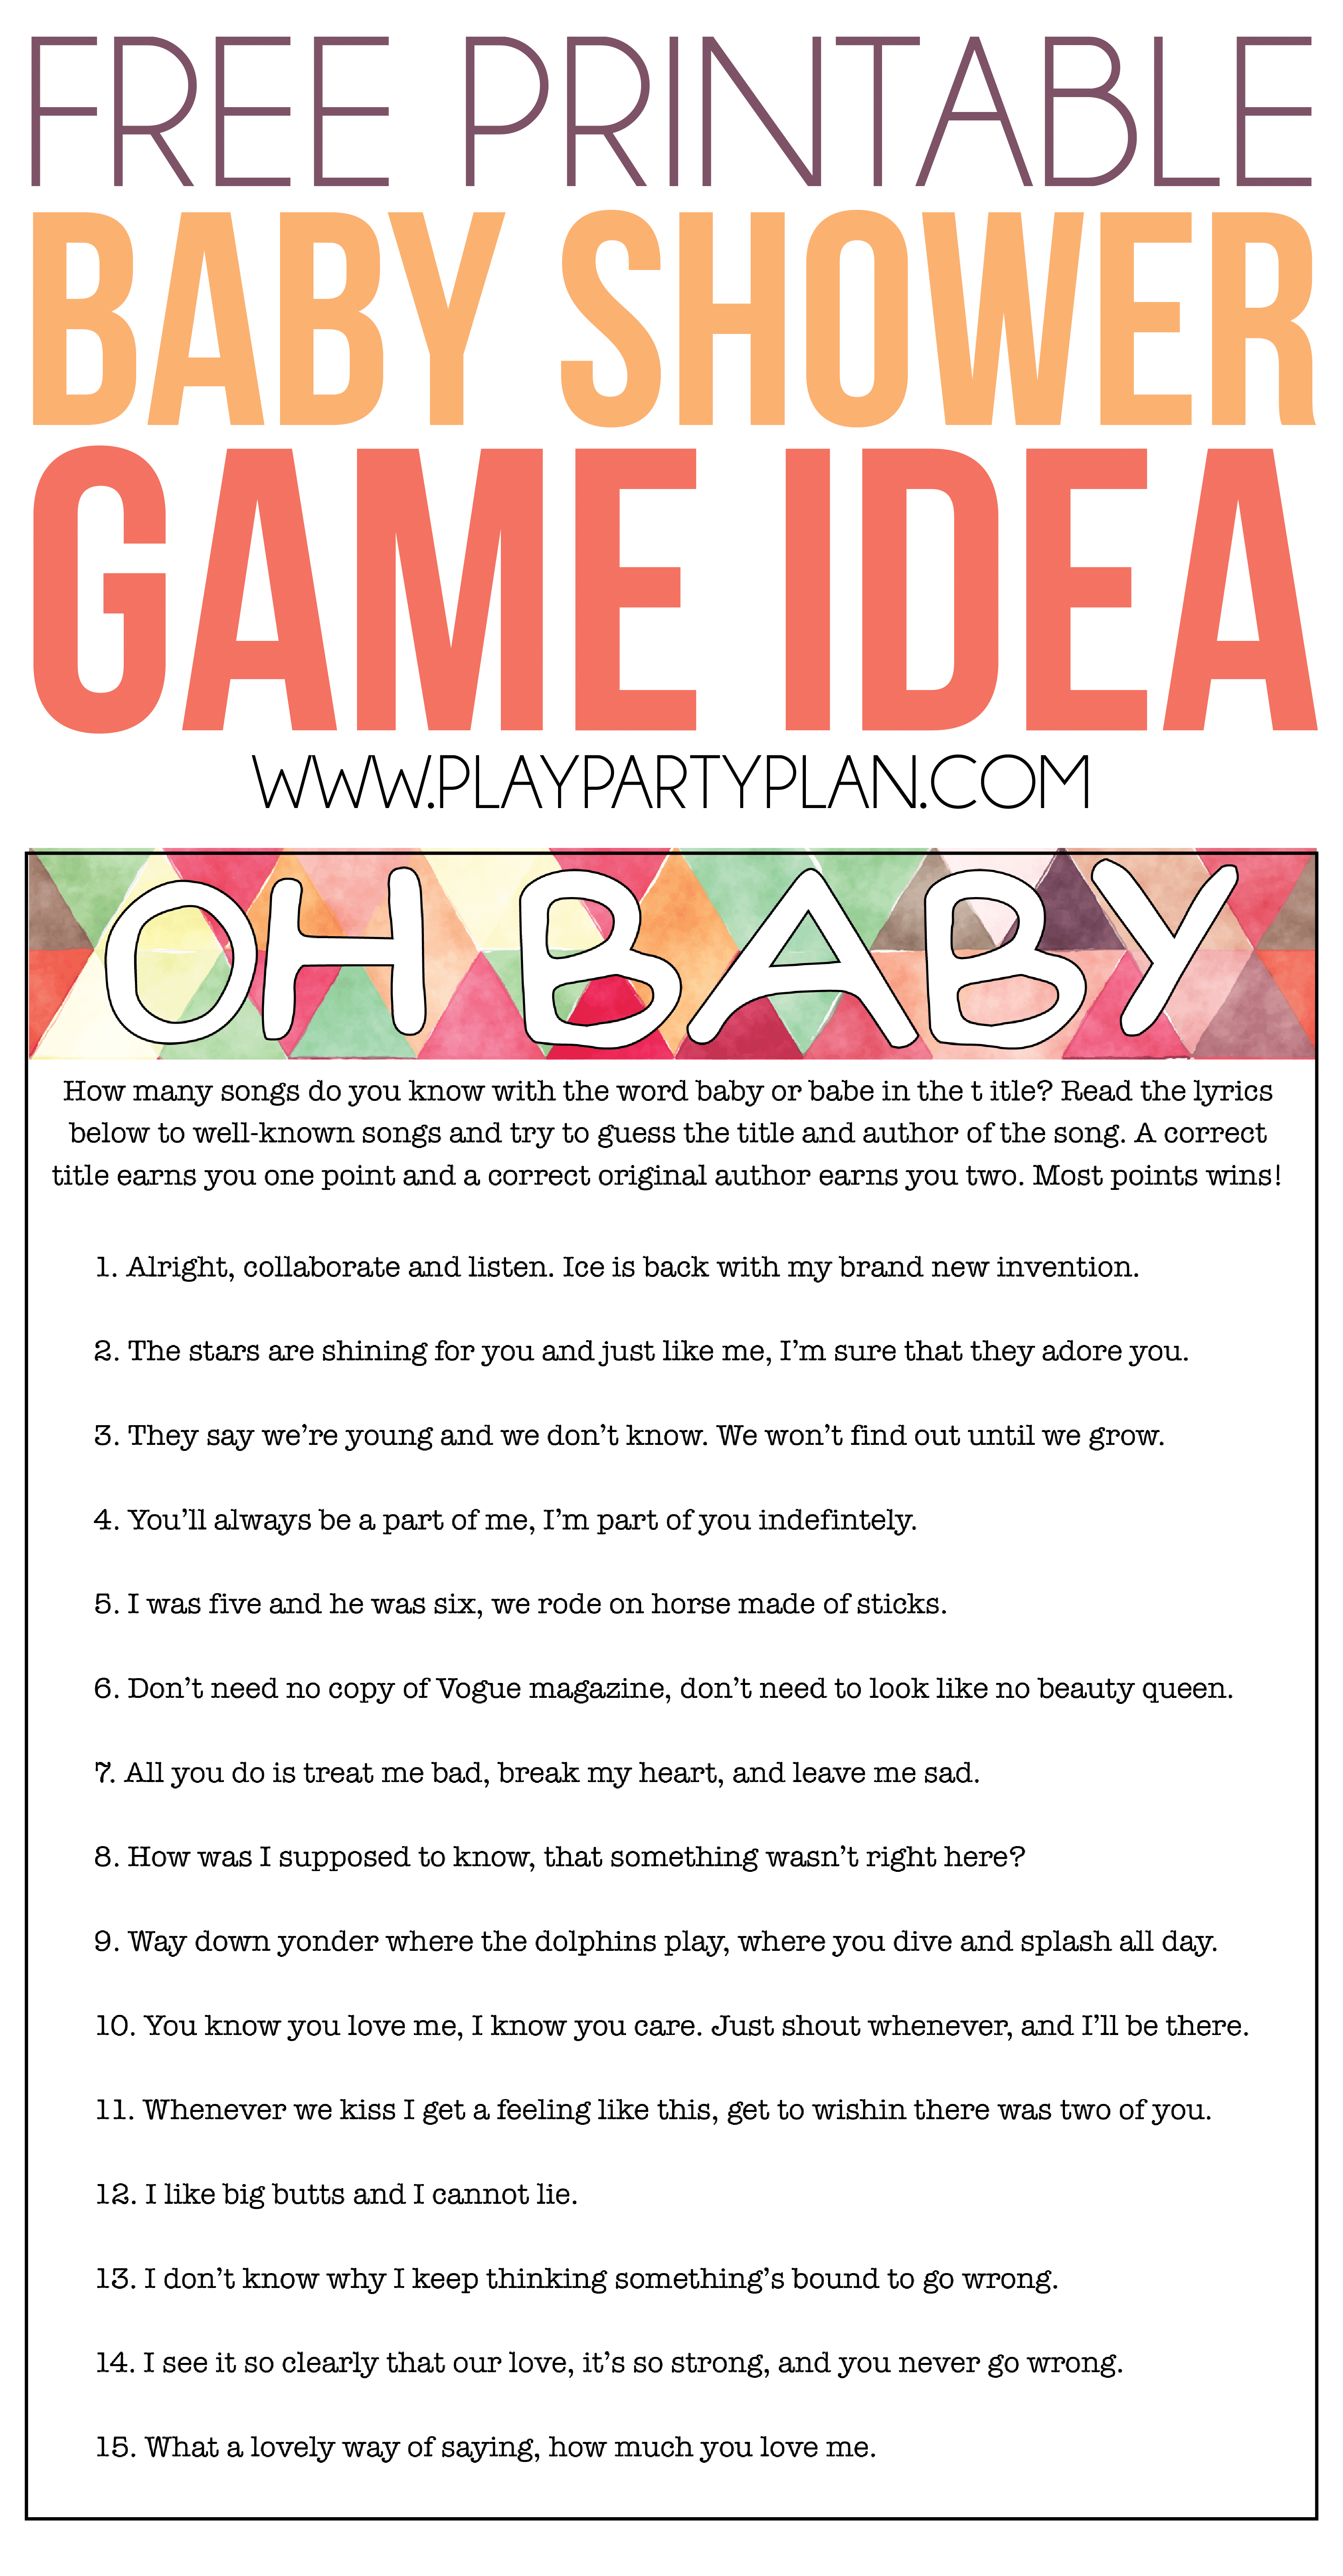 Oh Baby! Free Printable Baby Shower Game Expecting Moms Will Love - Name That Tune Baby Shower Game Free Printable